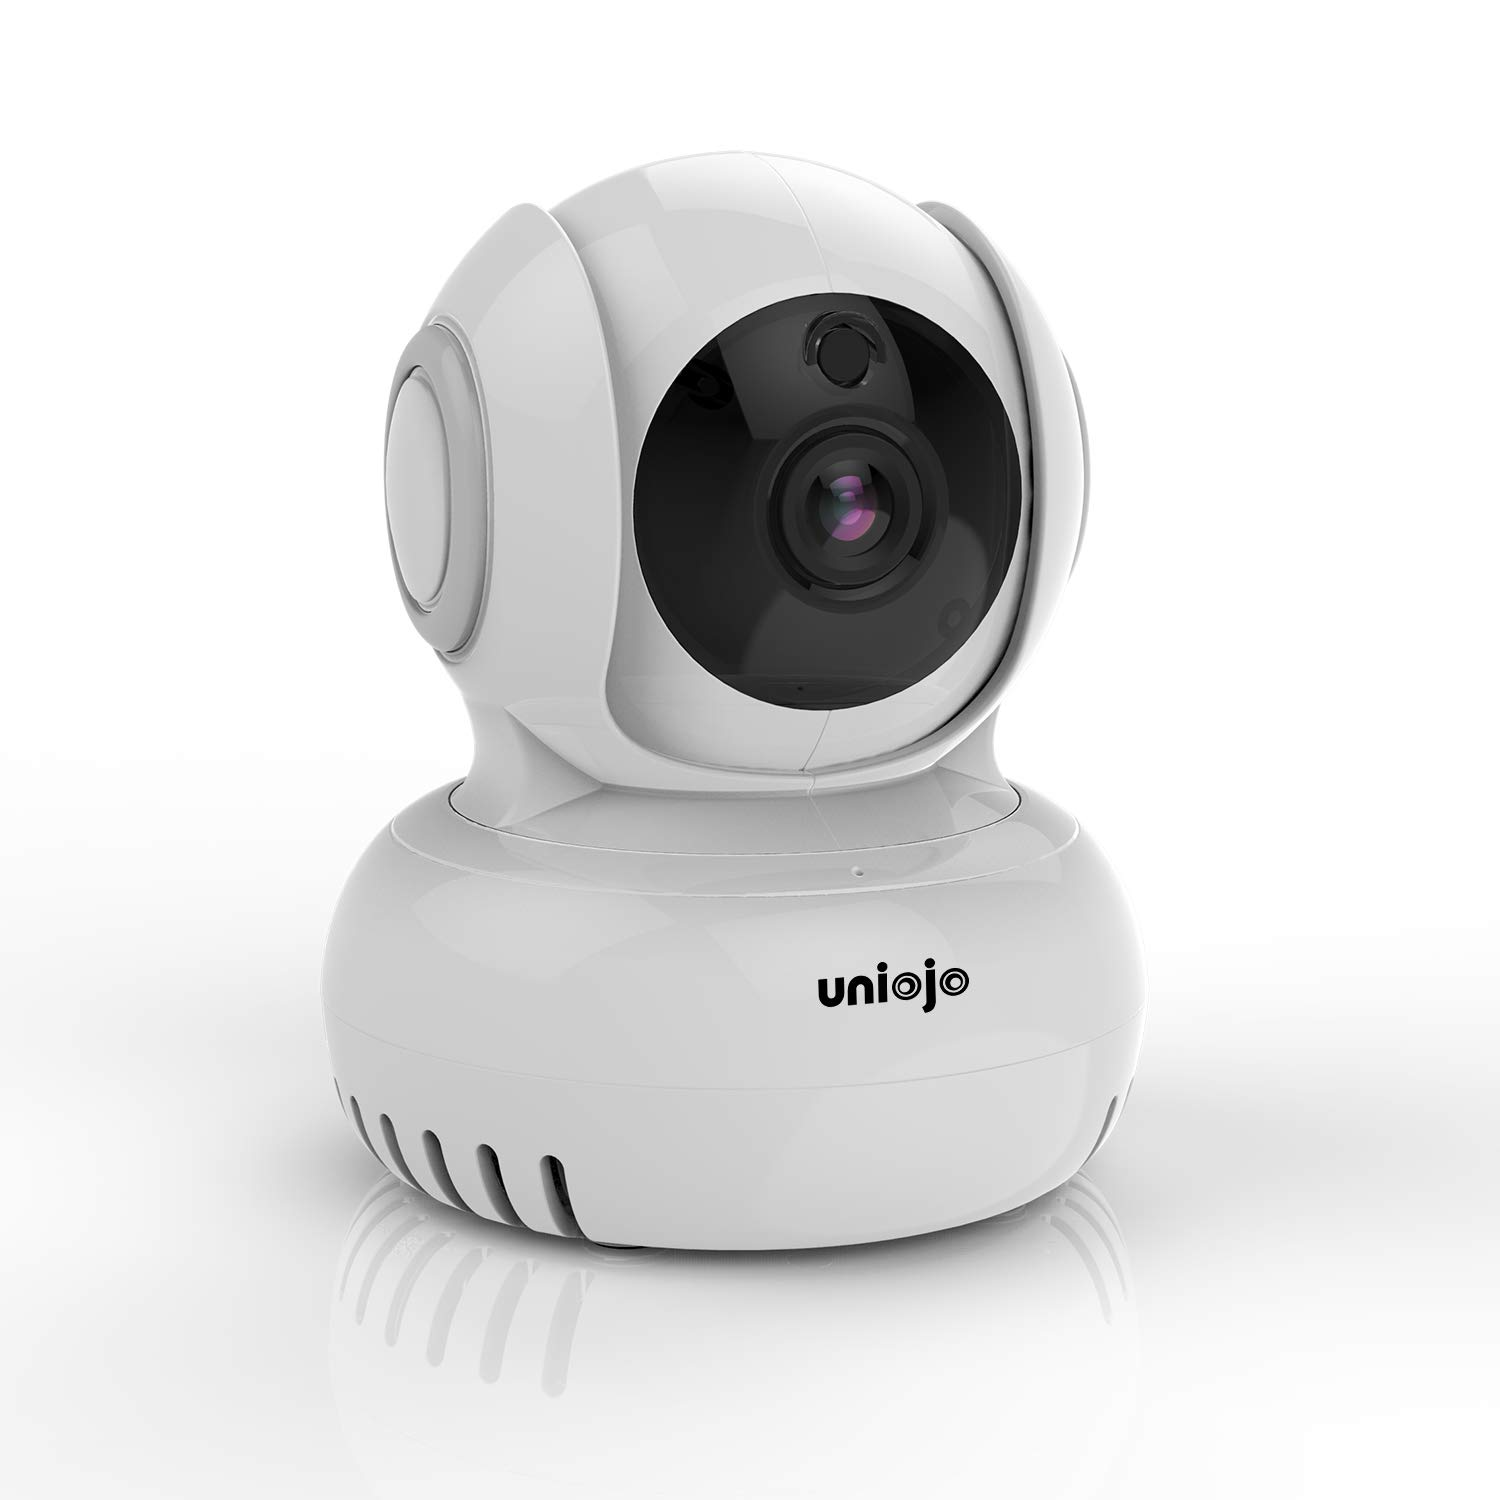 CDM product UNIOJO 1080P FHD WiFi IP Security Camera Wireless Indoor Camera Compatible with Alexa, Cloud Service Available, Motion Detection, 2-Way Audio Surveillance Monitor for Baby/Elder/Pet big image